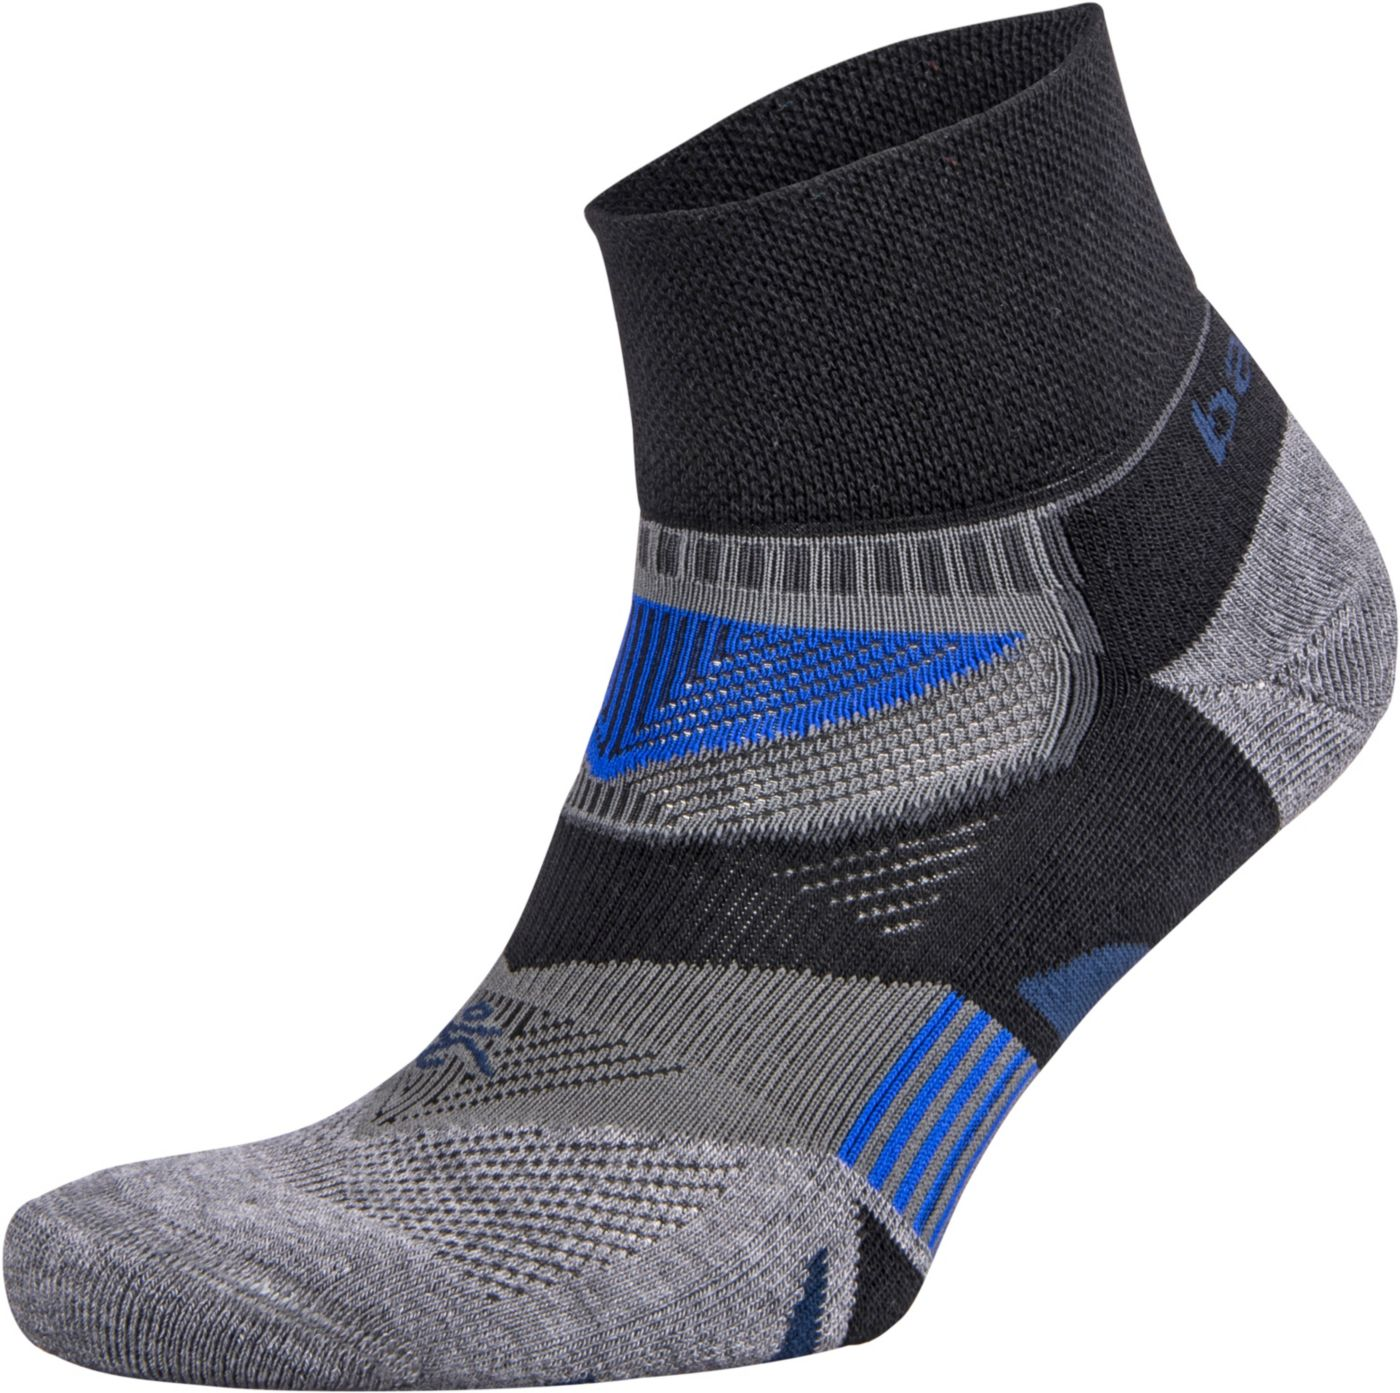 Balega Enduro Quarter Socks